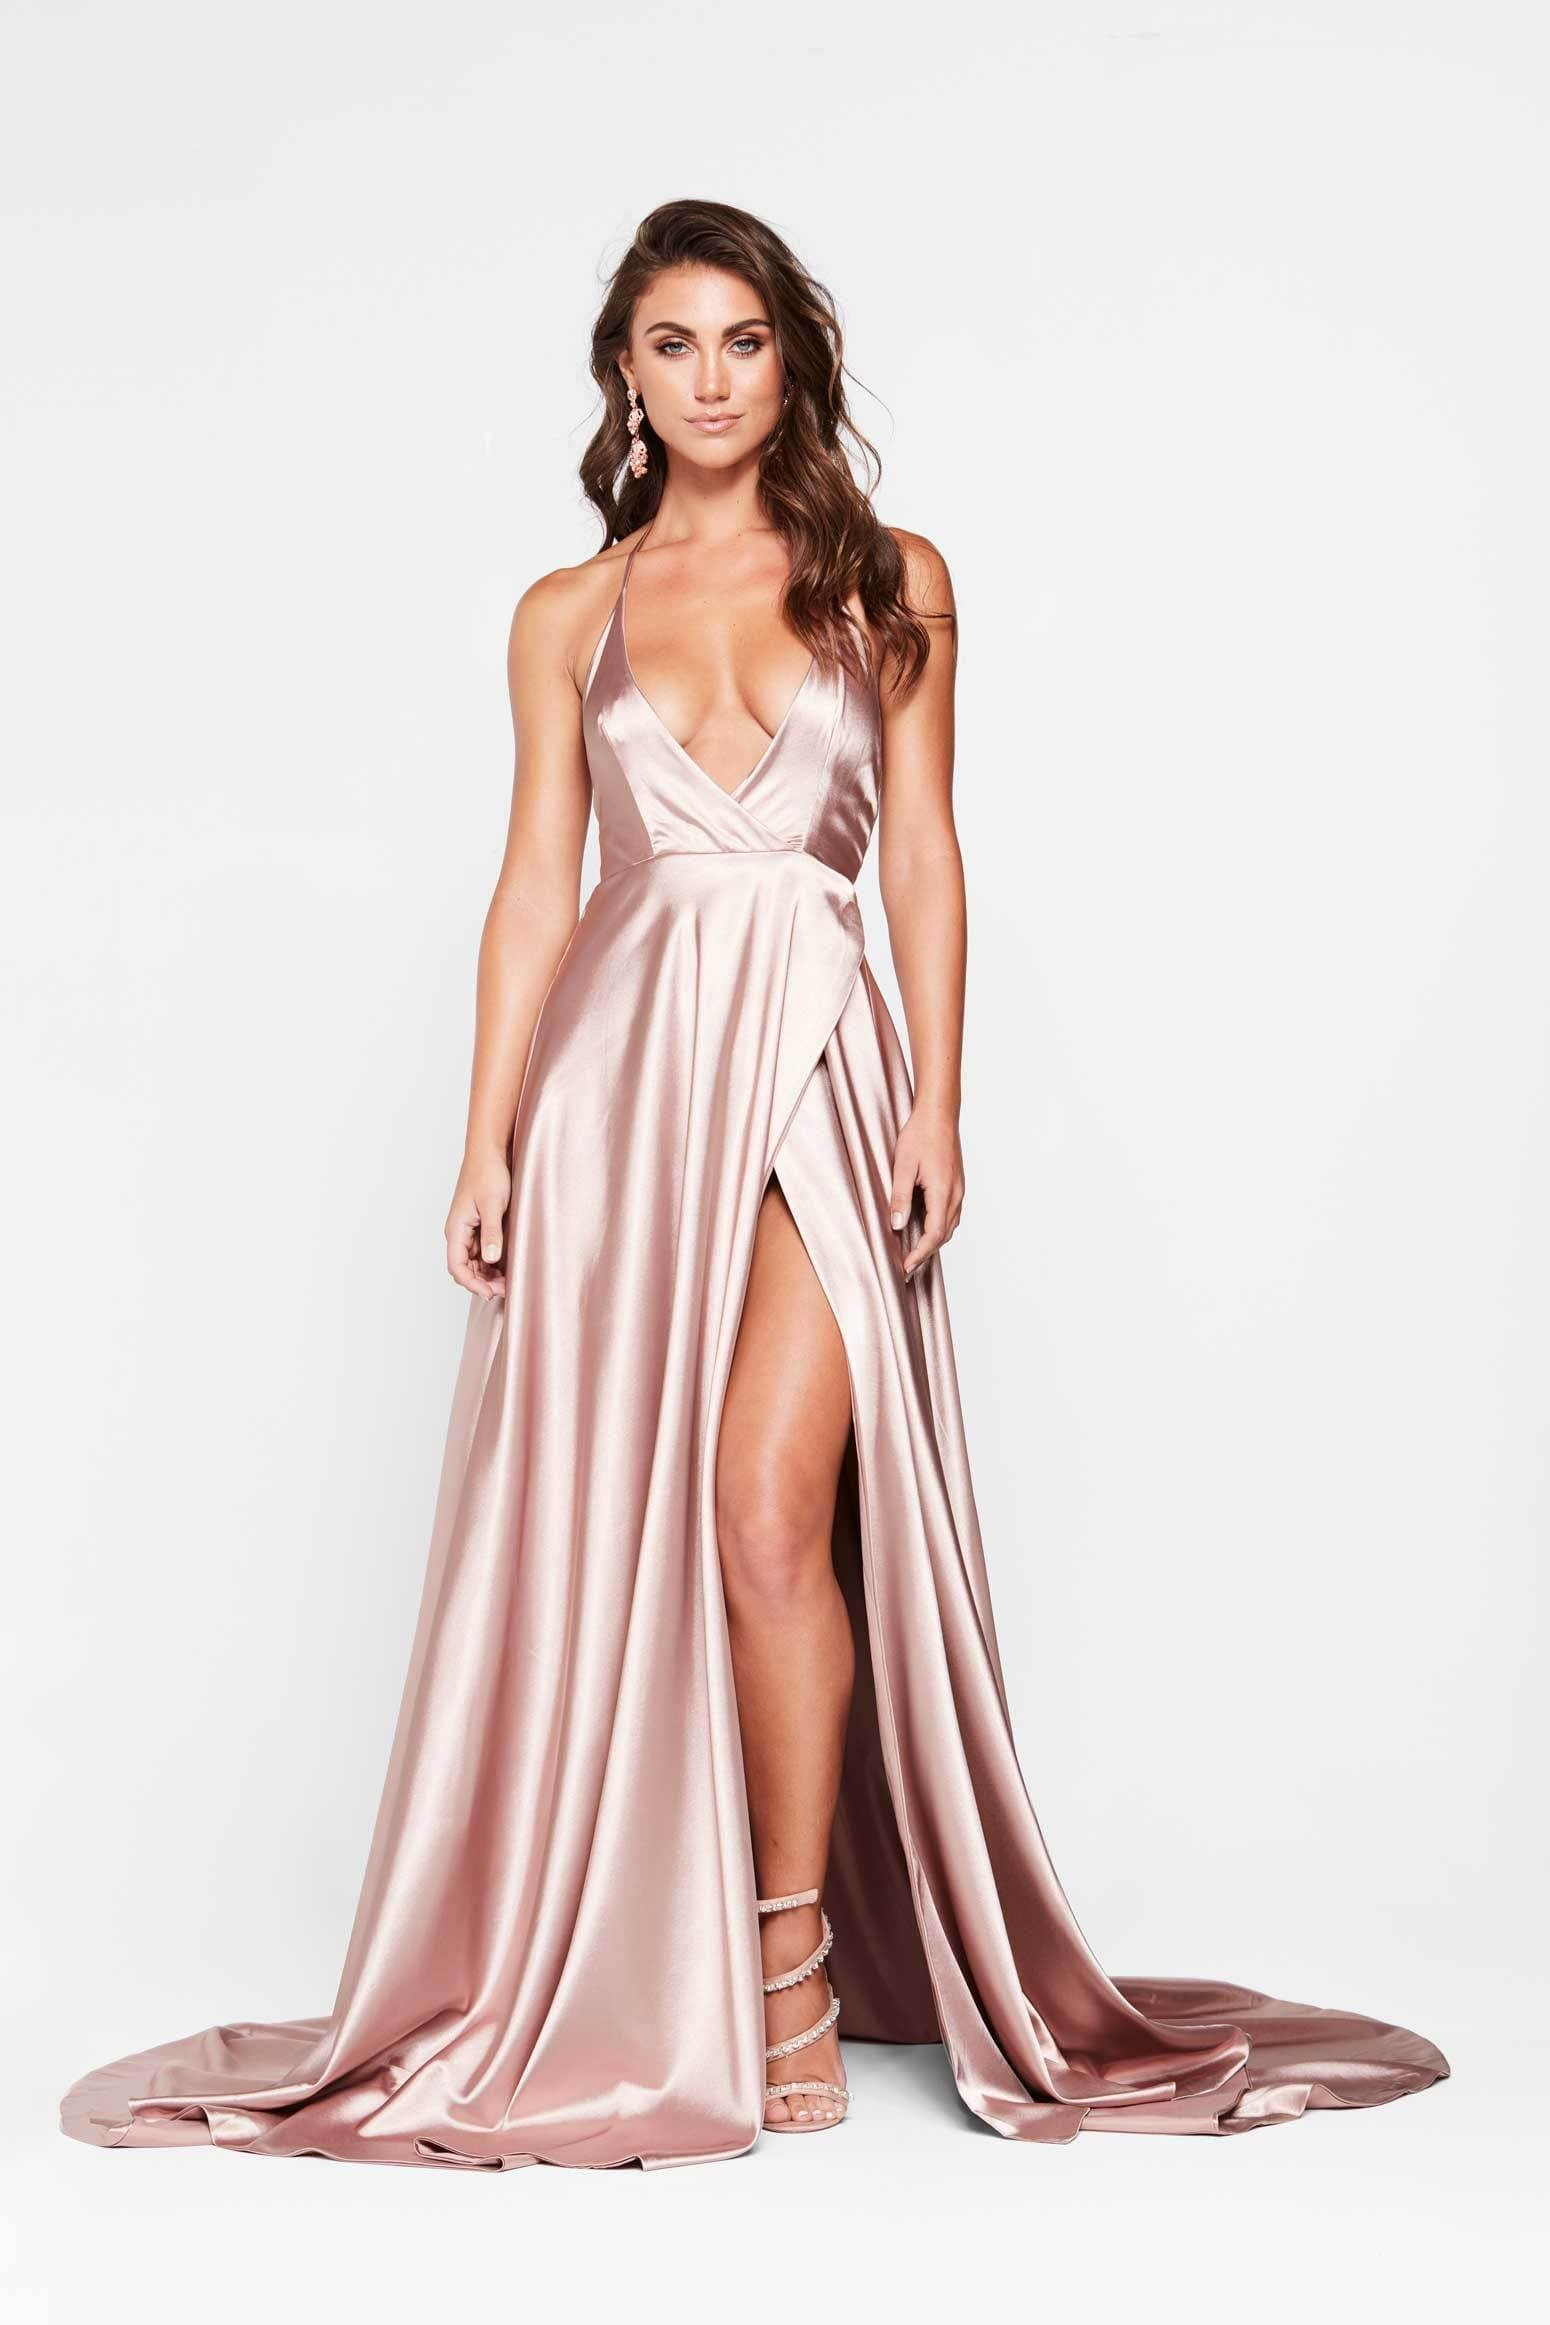 A&N Amani - Mauve Satin Dress with Side Slit and Low Back